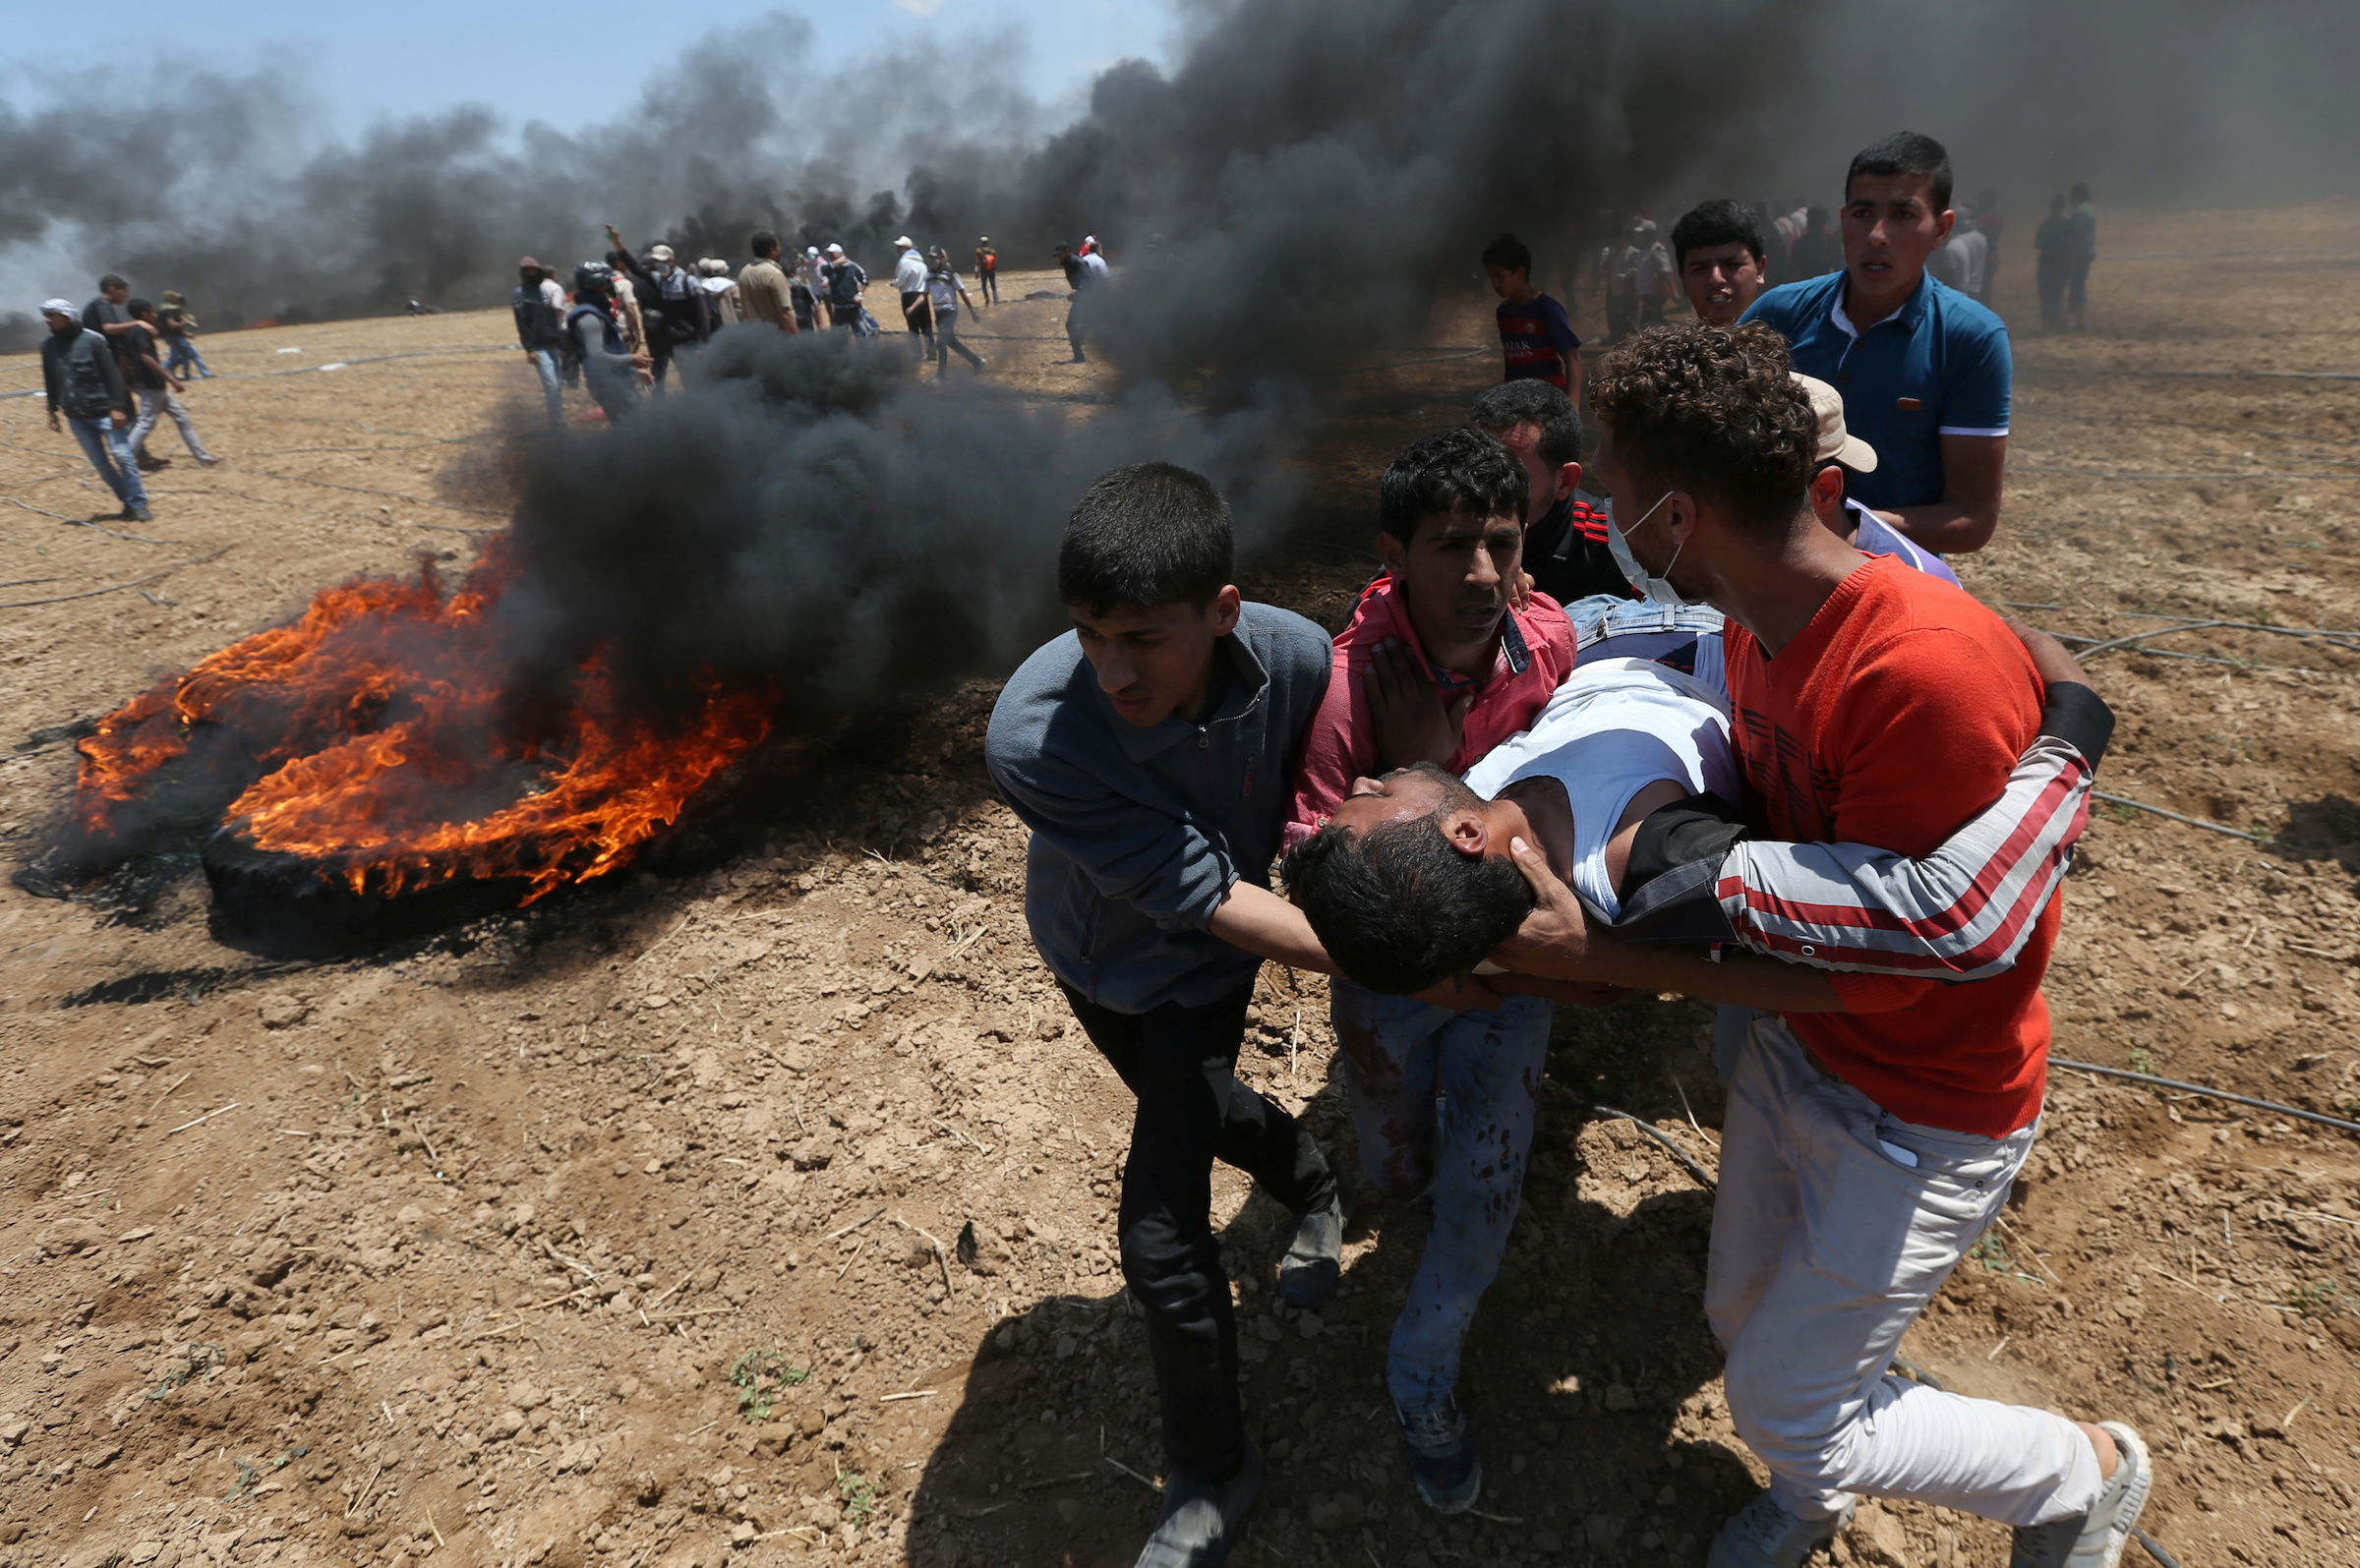 After Monday's Massacre, Boycotting Israel is the Best Way the World Can Fight Back